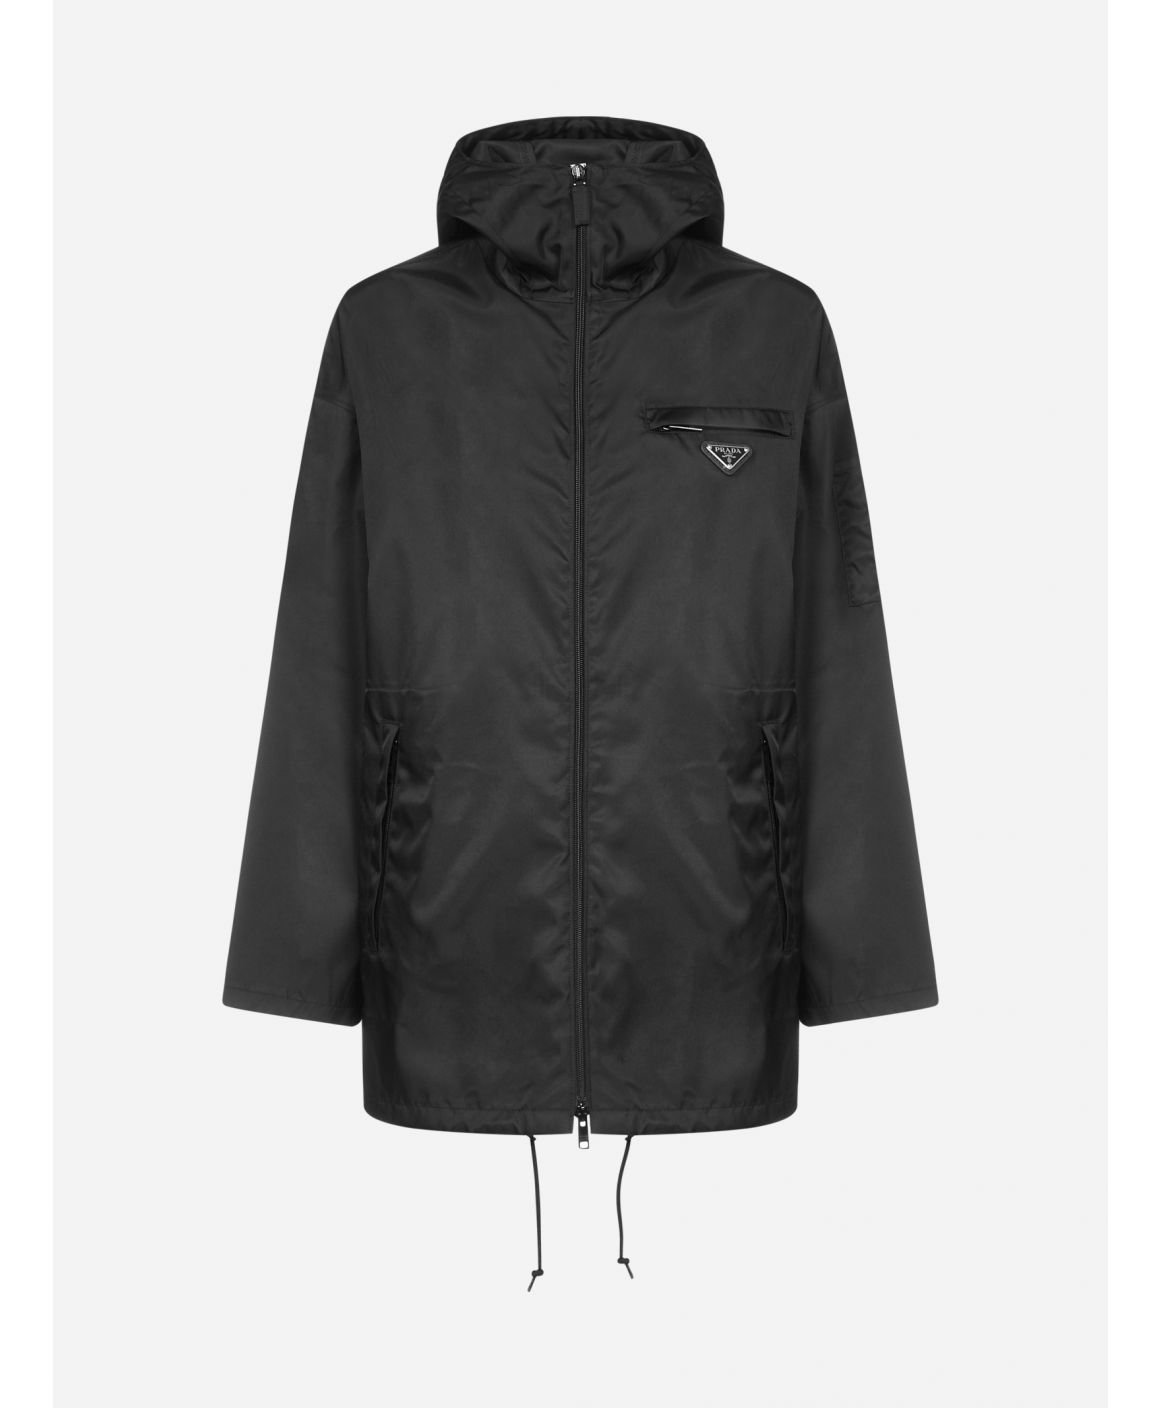 Re-Nylon hooded jacket